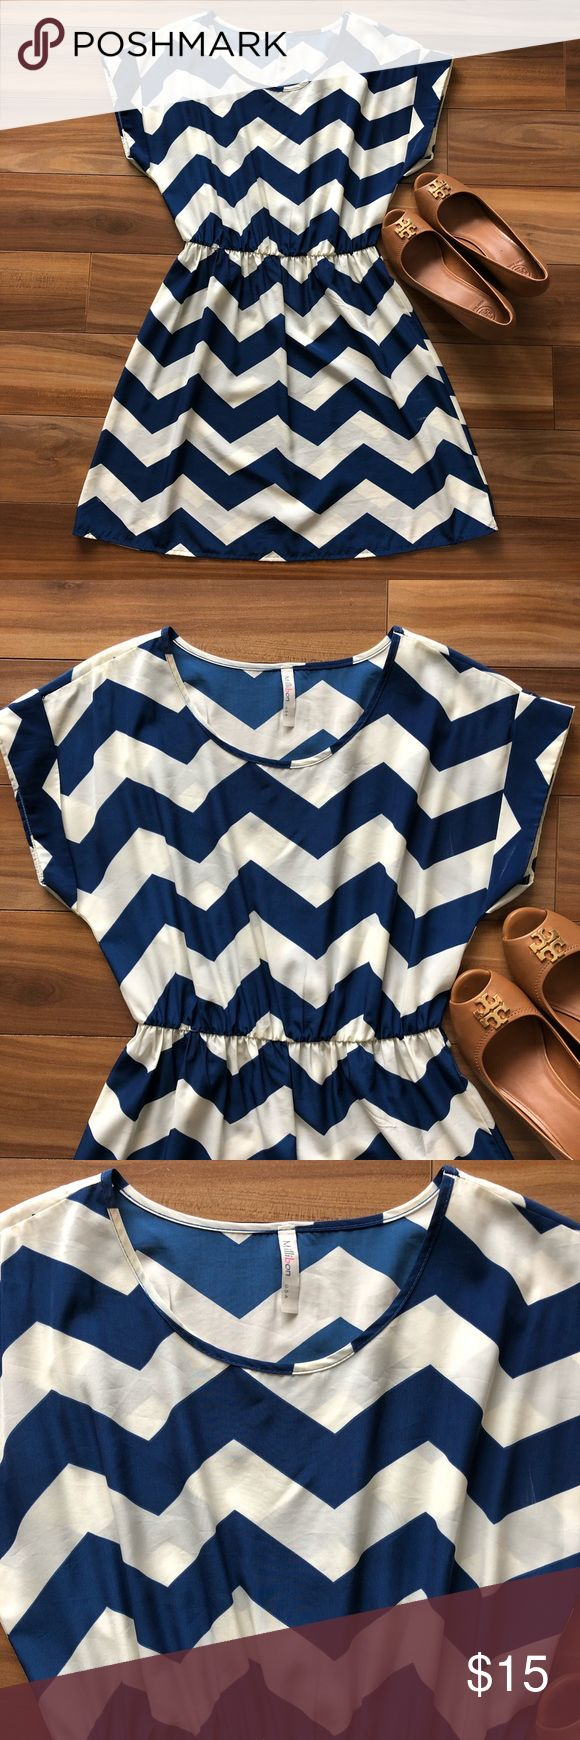 Chevron print dress 👗 Put it on and go! Chevron print dress is light and does it all! From casual to cocktail hour, with alternating zig zag stripes in white and navy blue. Waist is cinched to flatter your figure.   🌟Machine wash 🌟Great condition  🌺Make an offer 💵Bundle and save Dresses